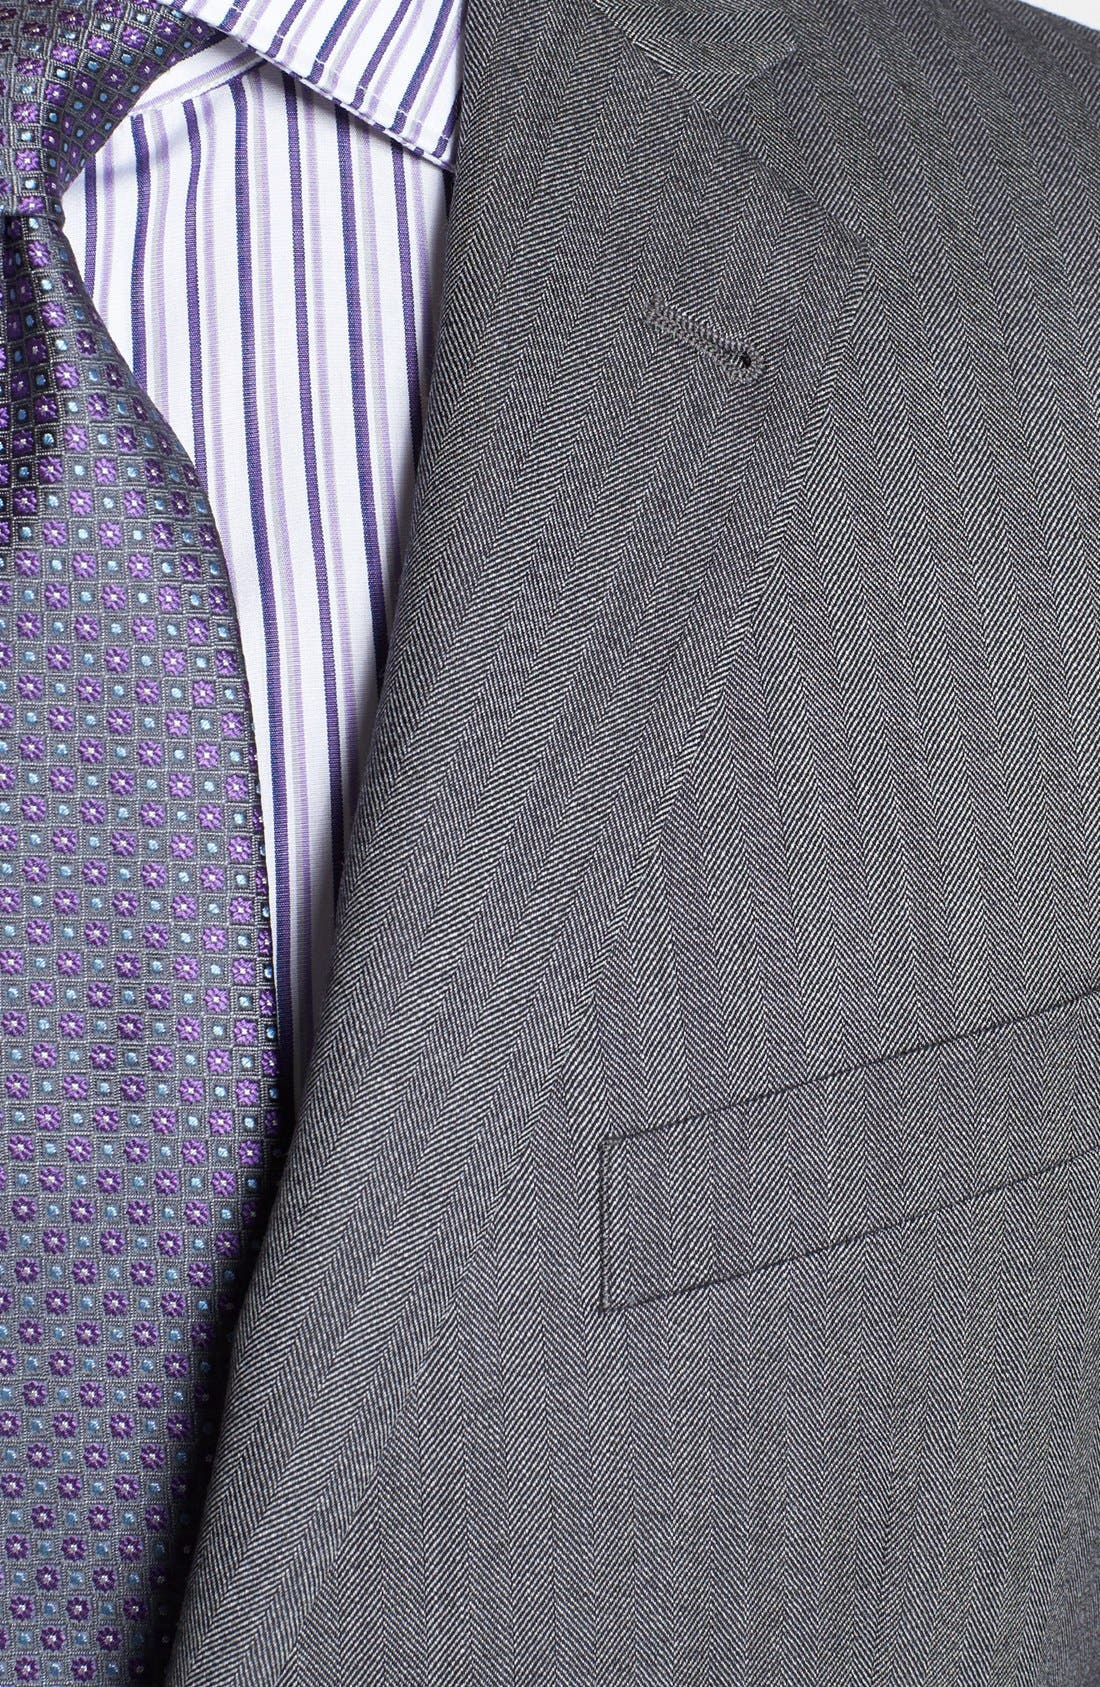 Alternate Image 2  - Joseph Abboud 'Profile/Hybrid' Trim Fit Herringbone Sportcoat